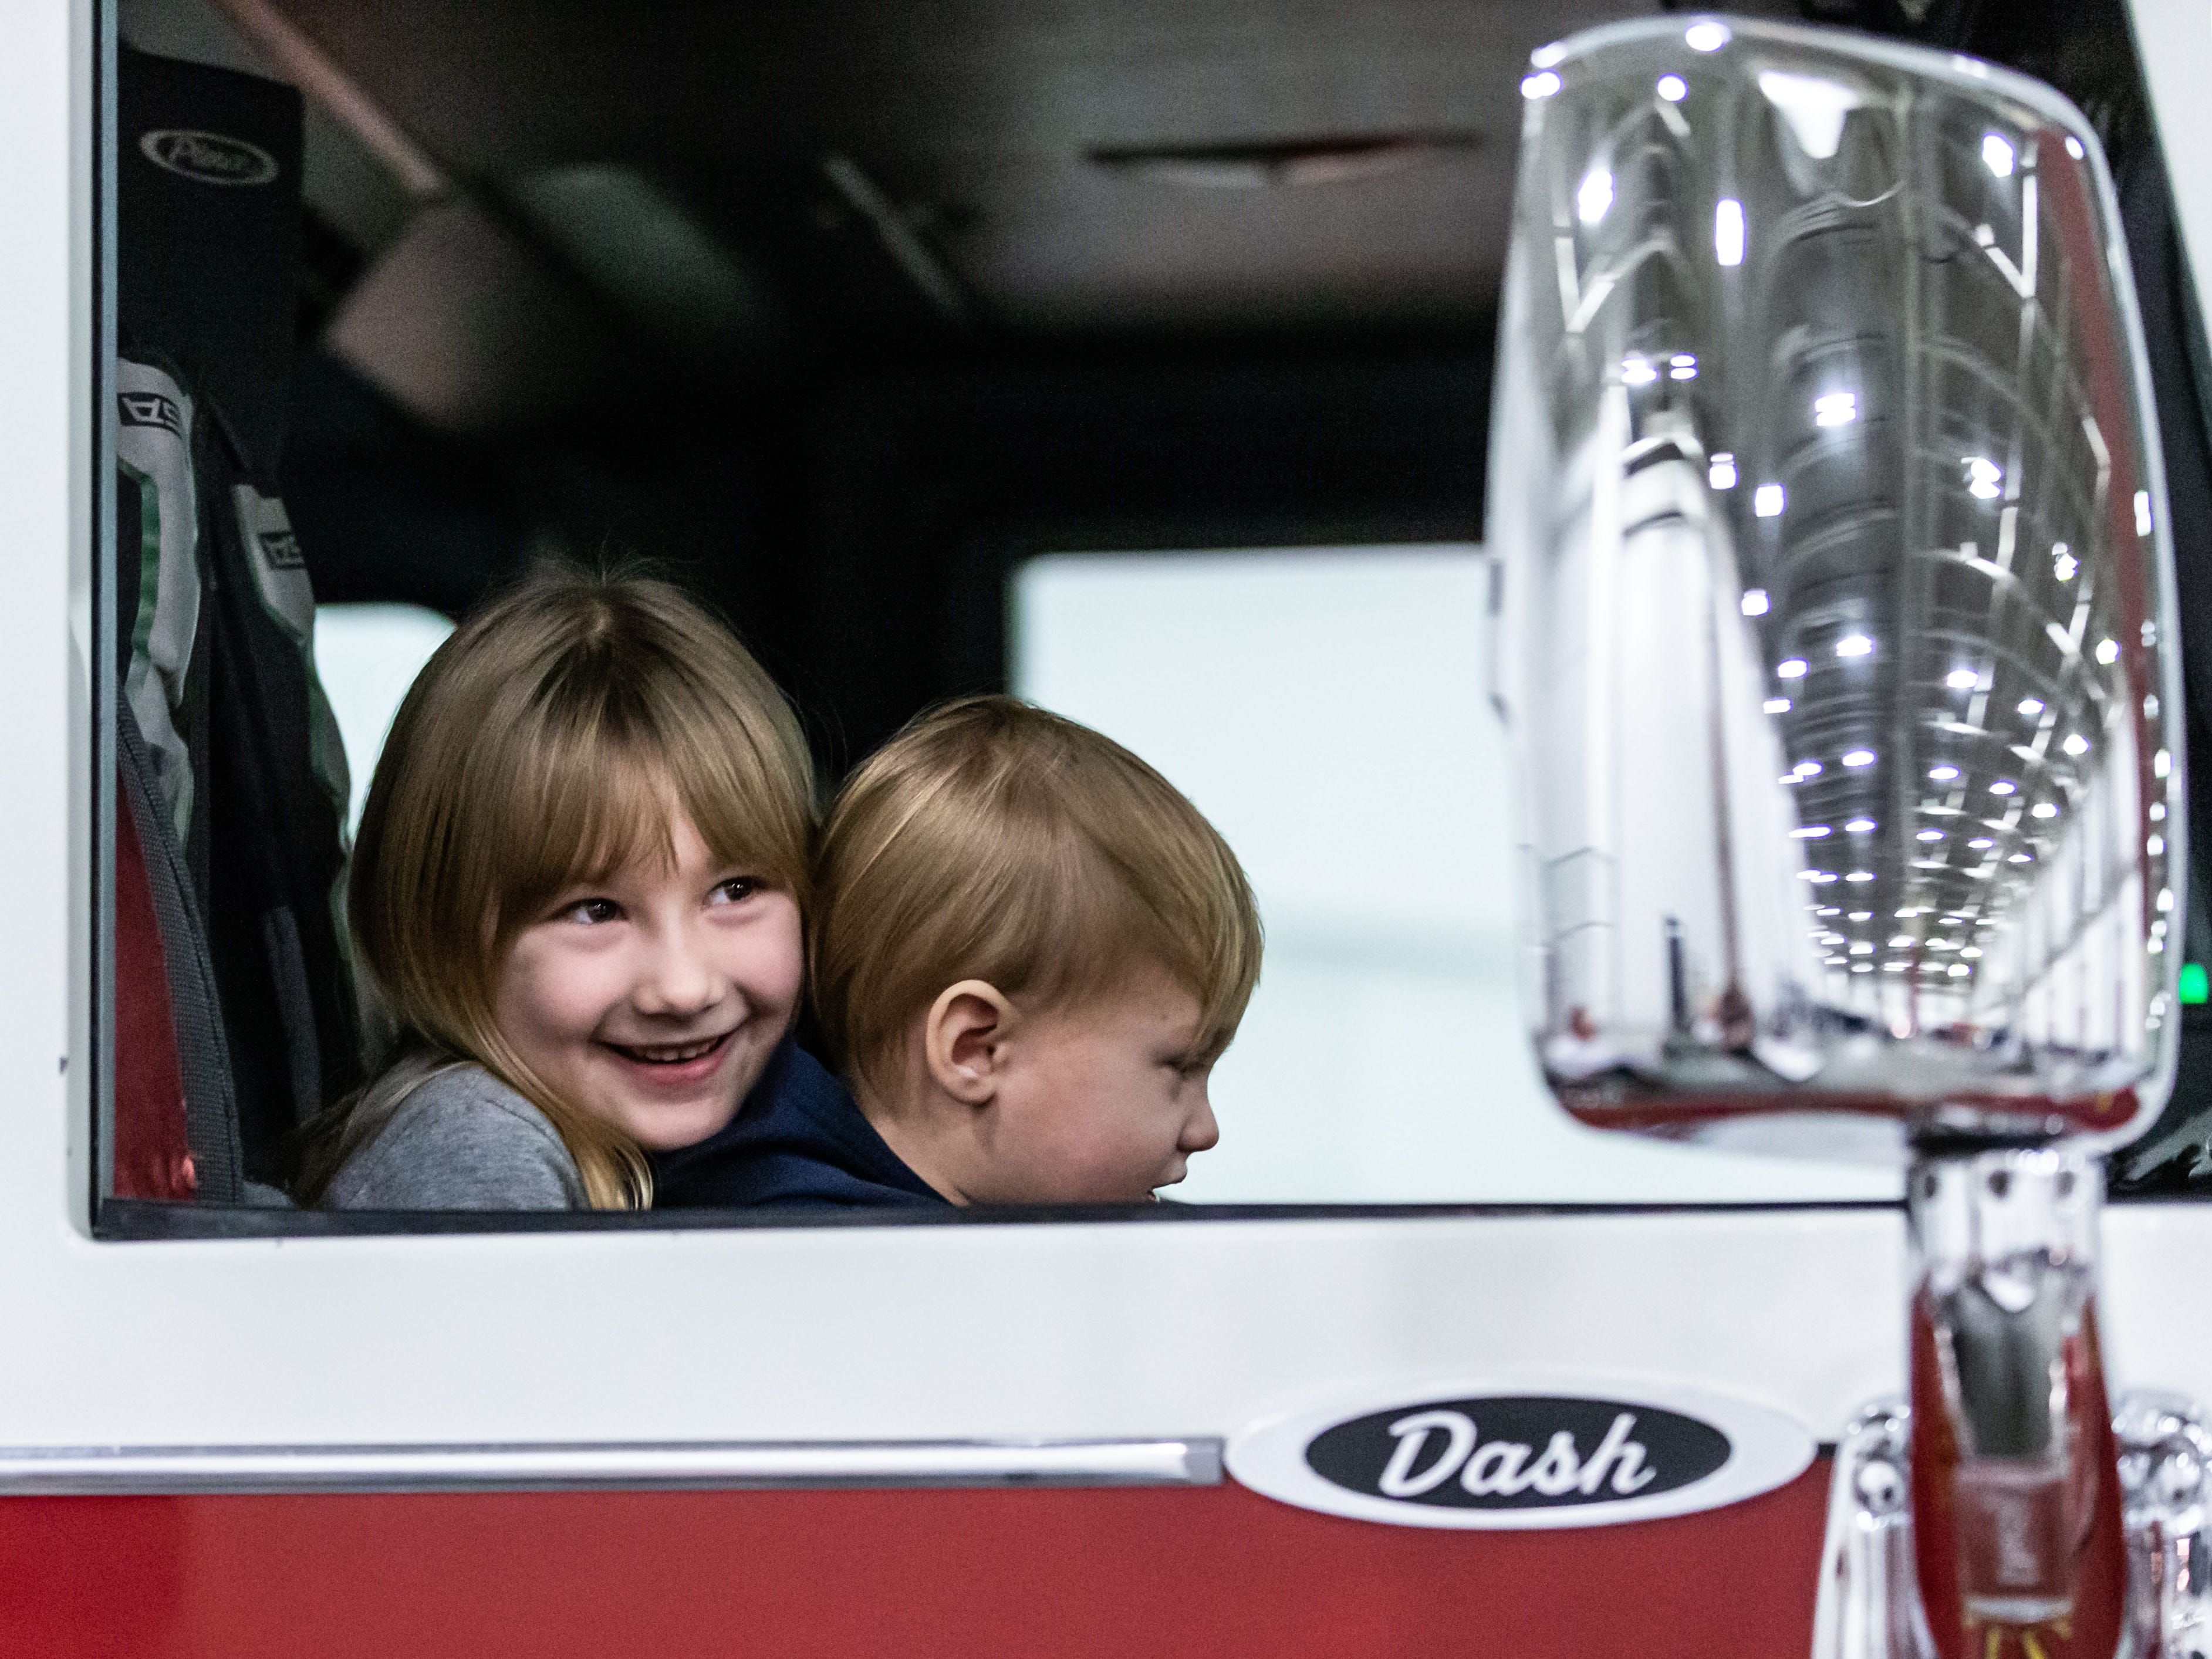 Six-year-old Sadie Lesnik of Milwaukee and her brother Charlie, 1, check out the inside of a West Allis fire truck during the Milwaukee Kids Expo at State Fair Park in West Allis on Sunday.